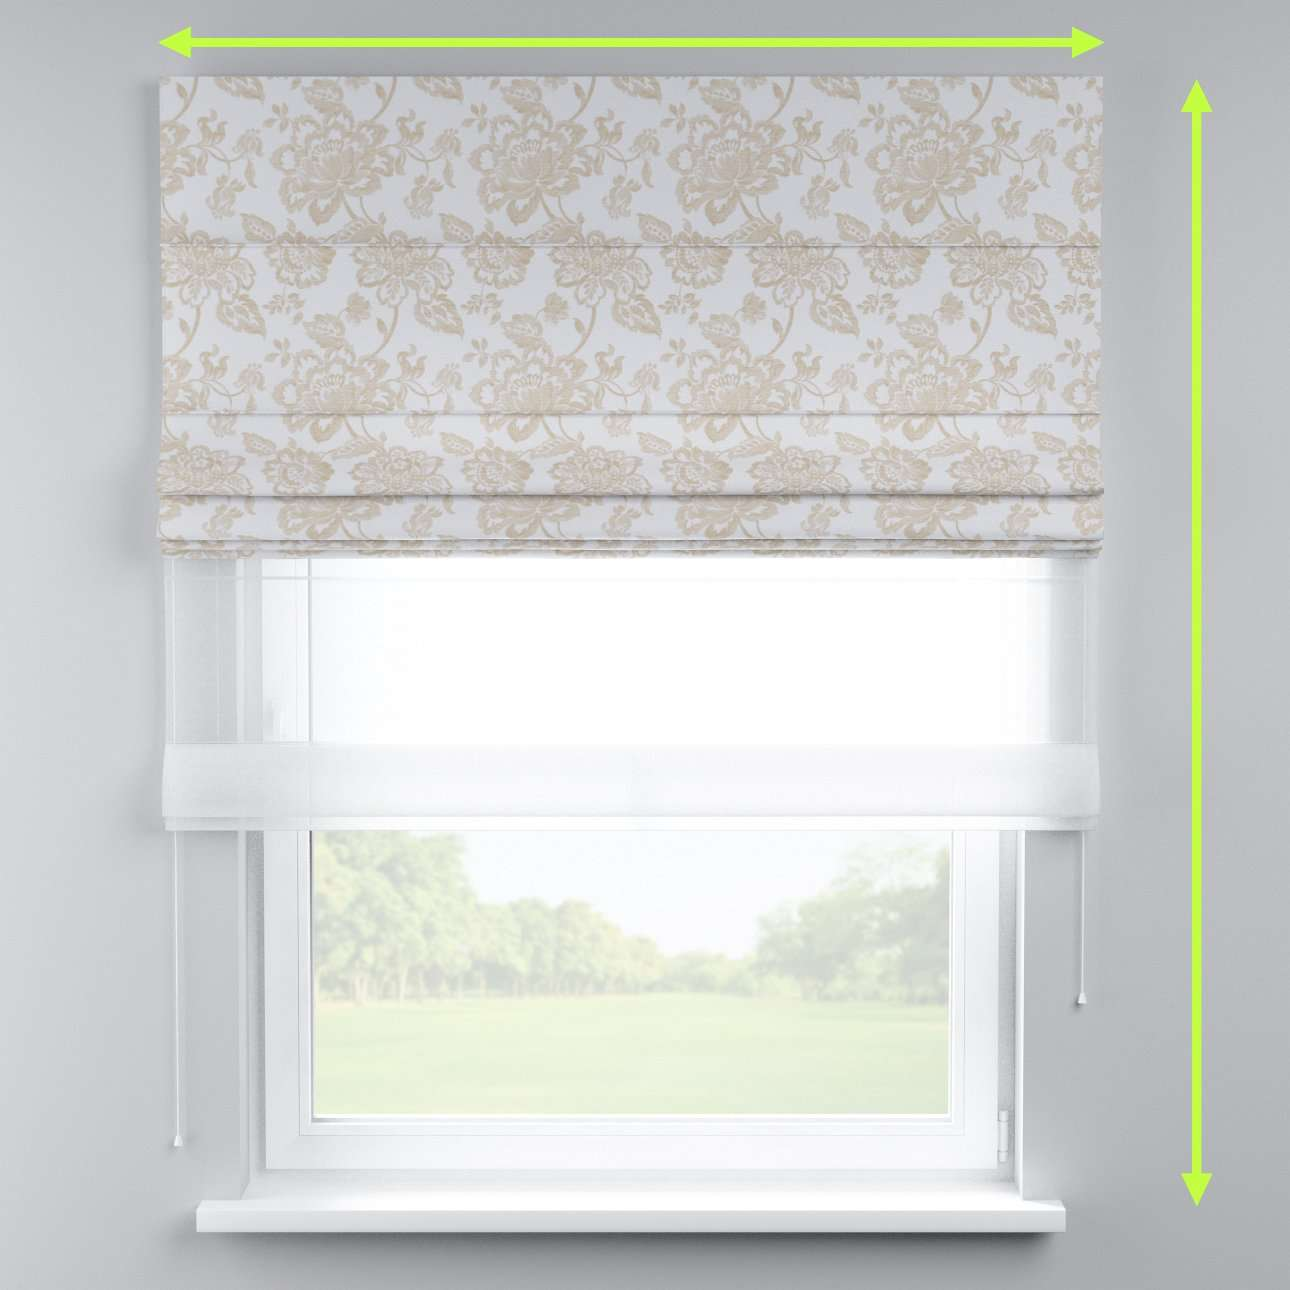 Voile and fabric roman blind (DUO II) in collection Rustica, fabric: 138-23